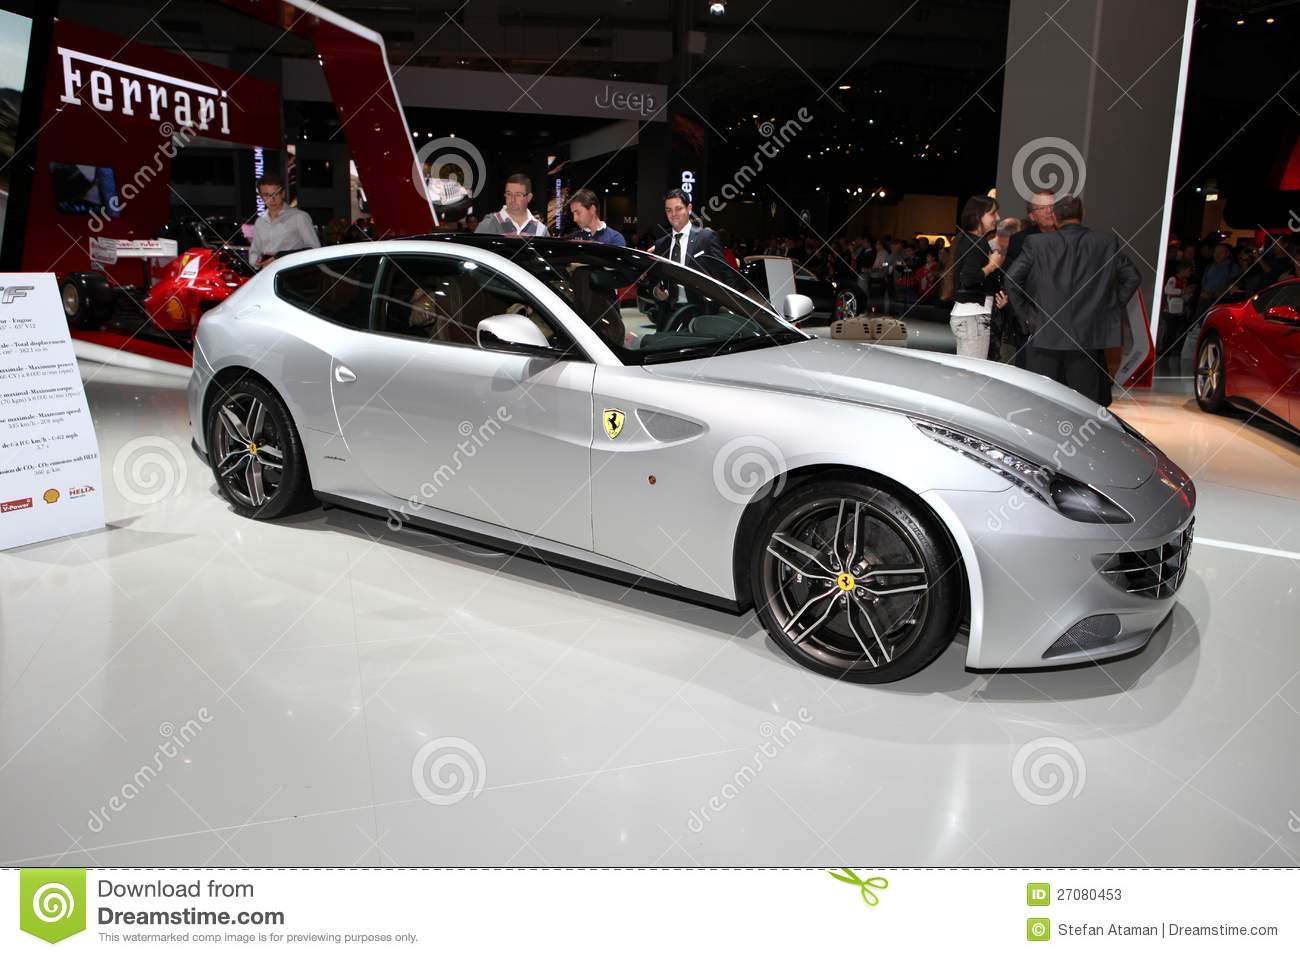 ferrari ff photo stock ditorial image du neuf sports 27080453. Black Bedroom Furniture Sets. Home Design Ideas